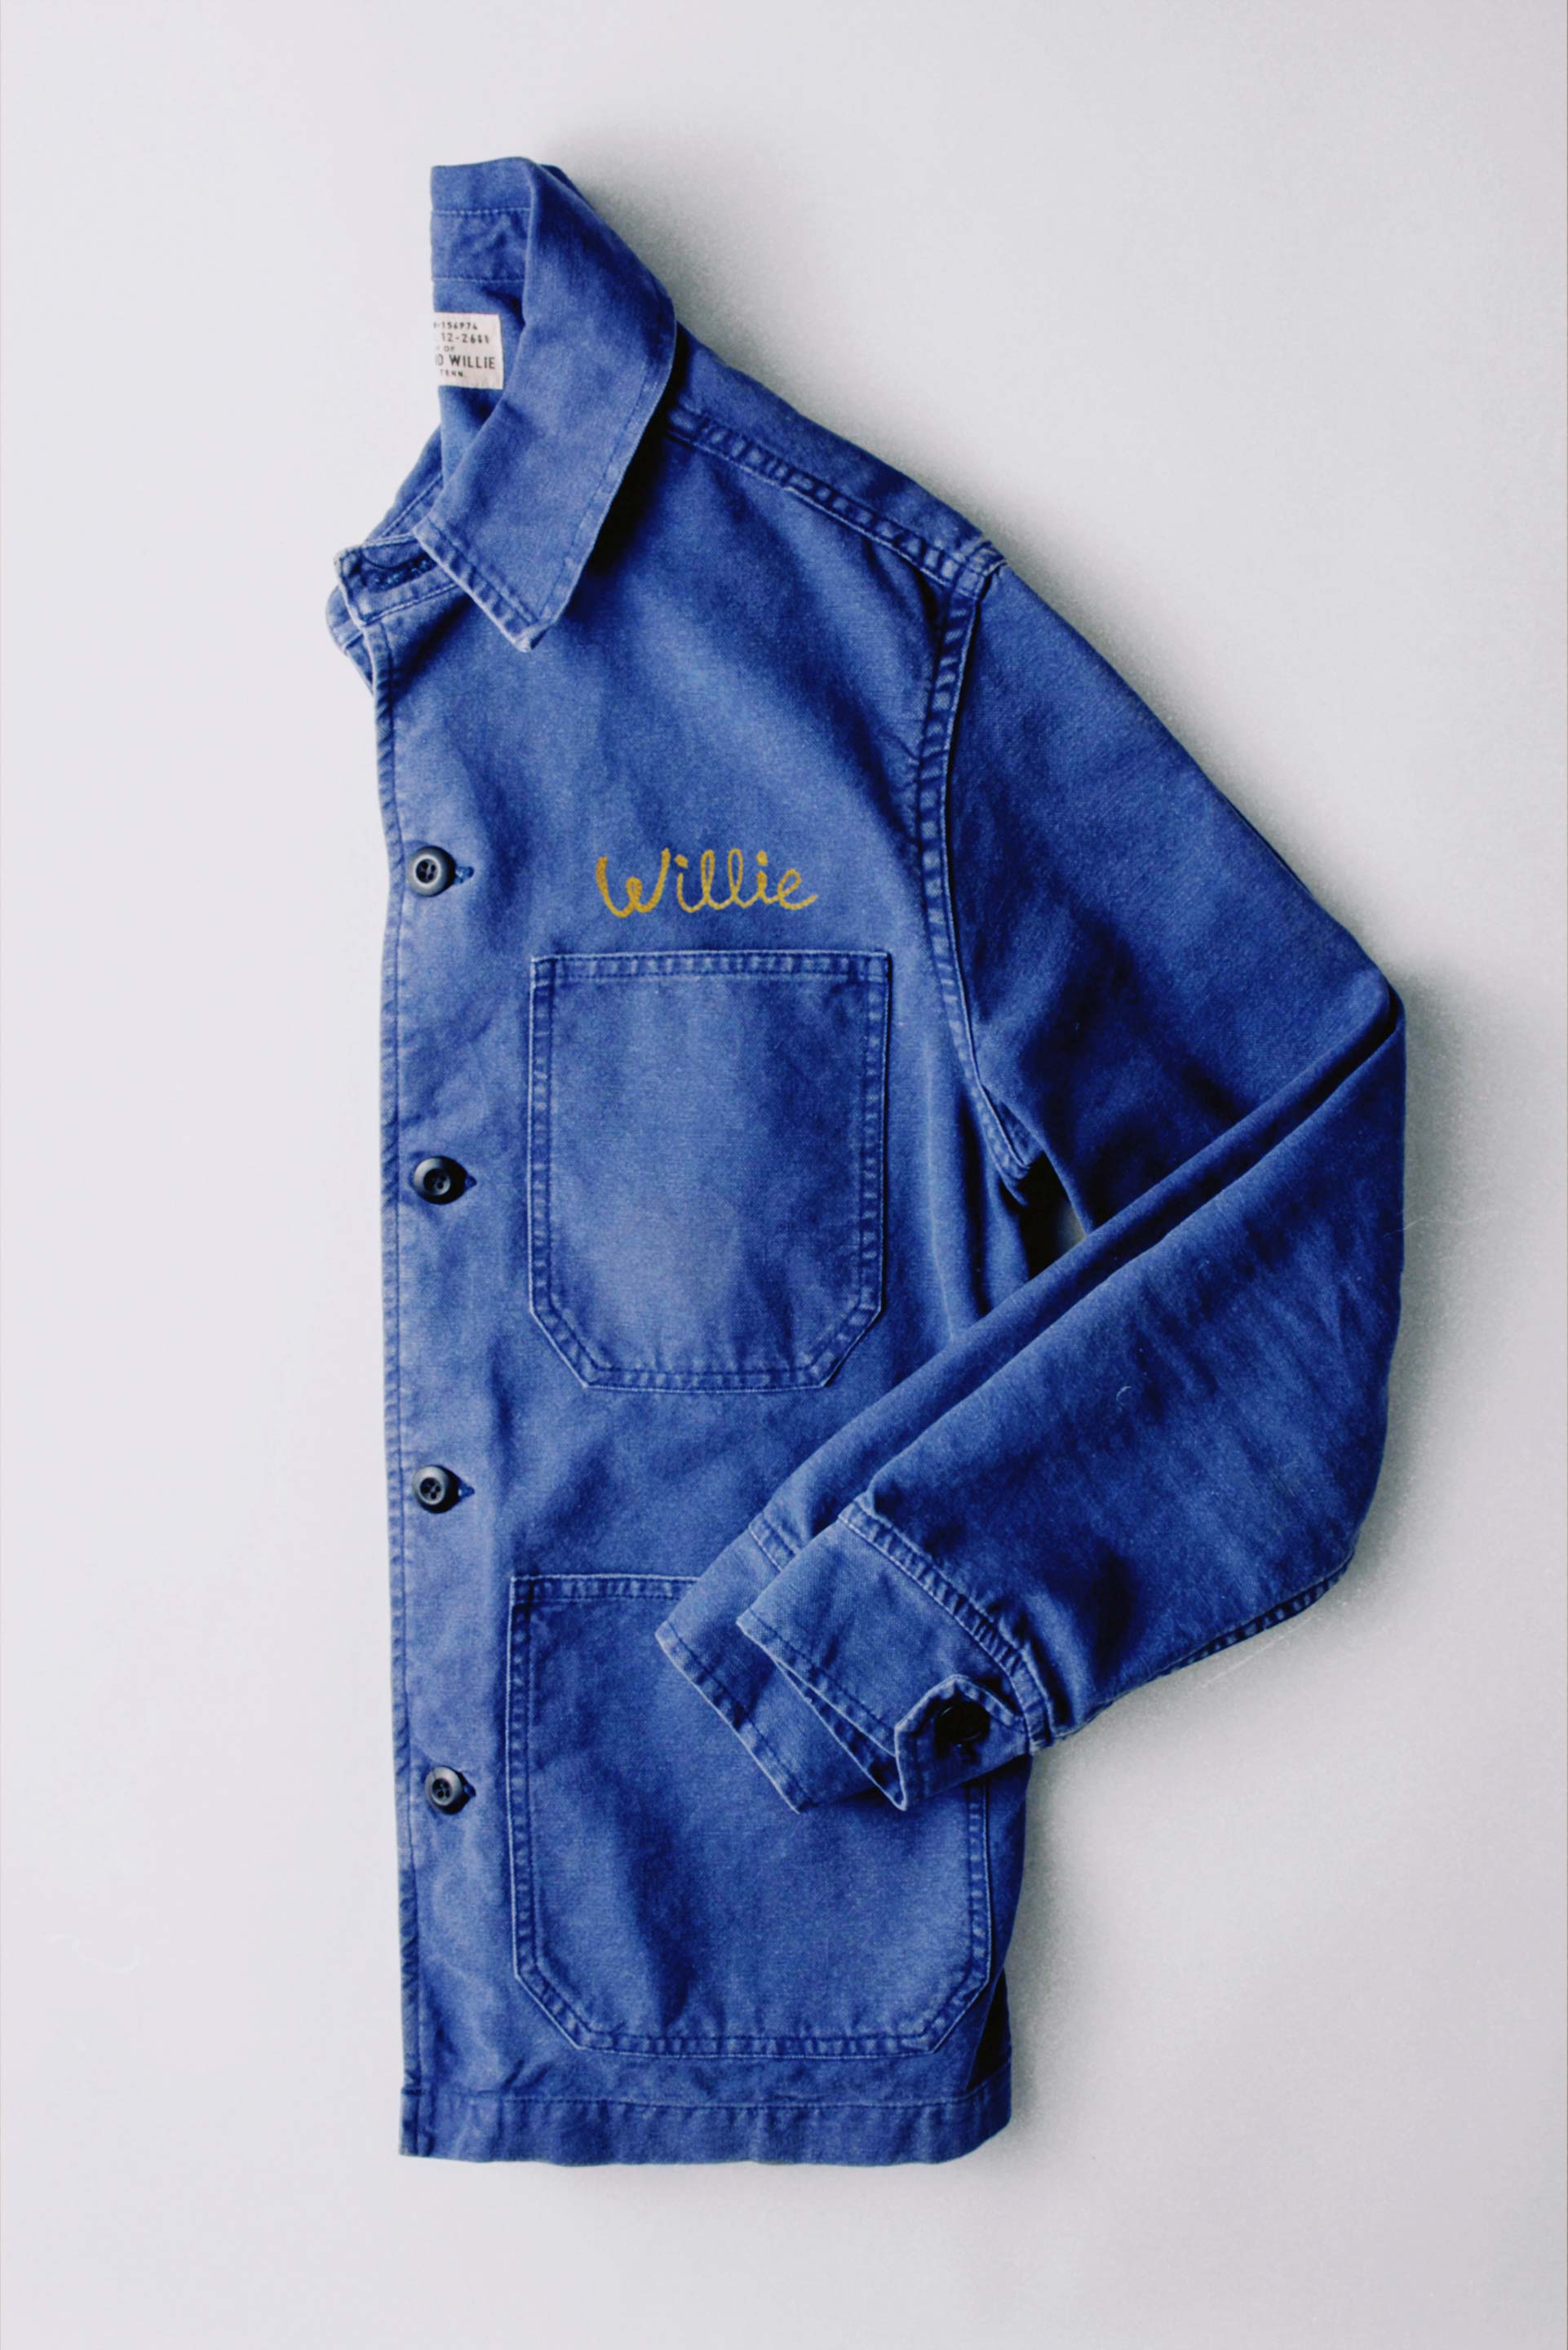 imogene + willie - chainstitch jack jacket french blue